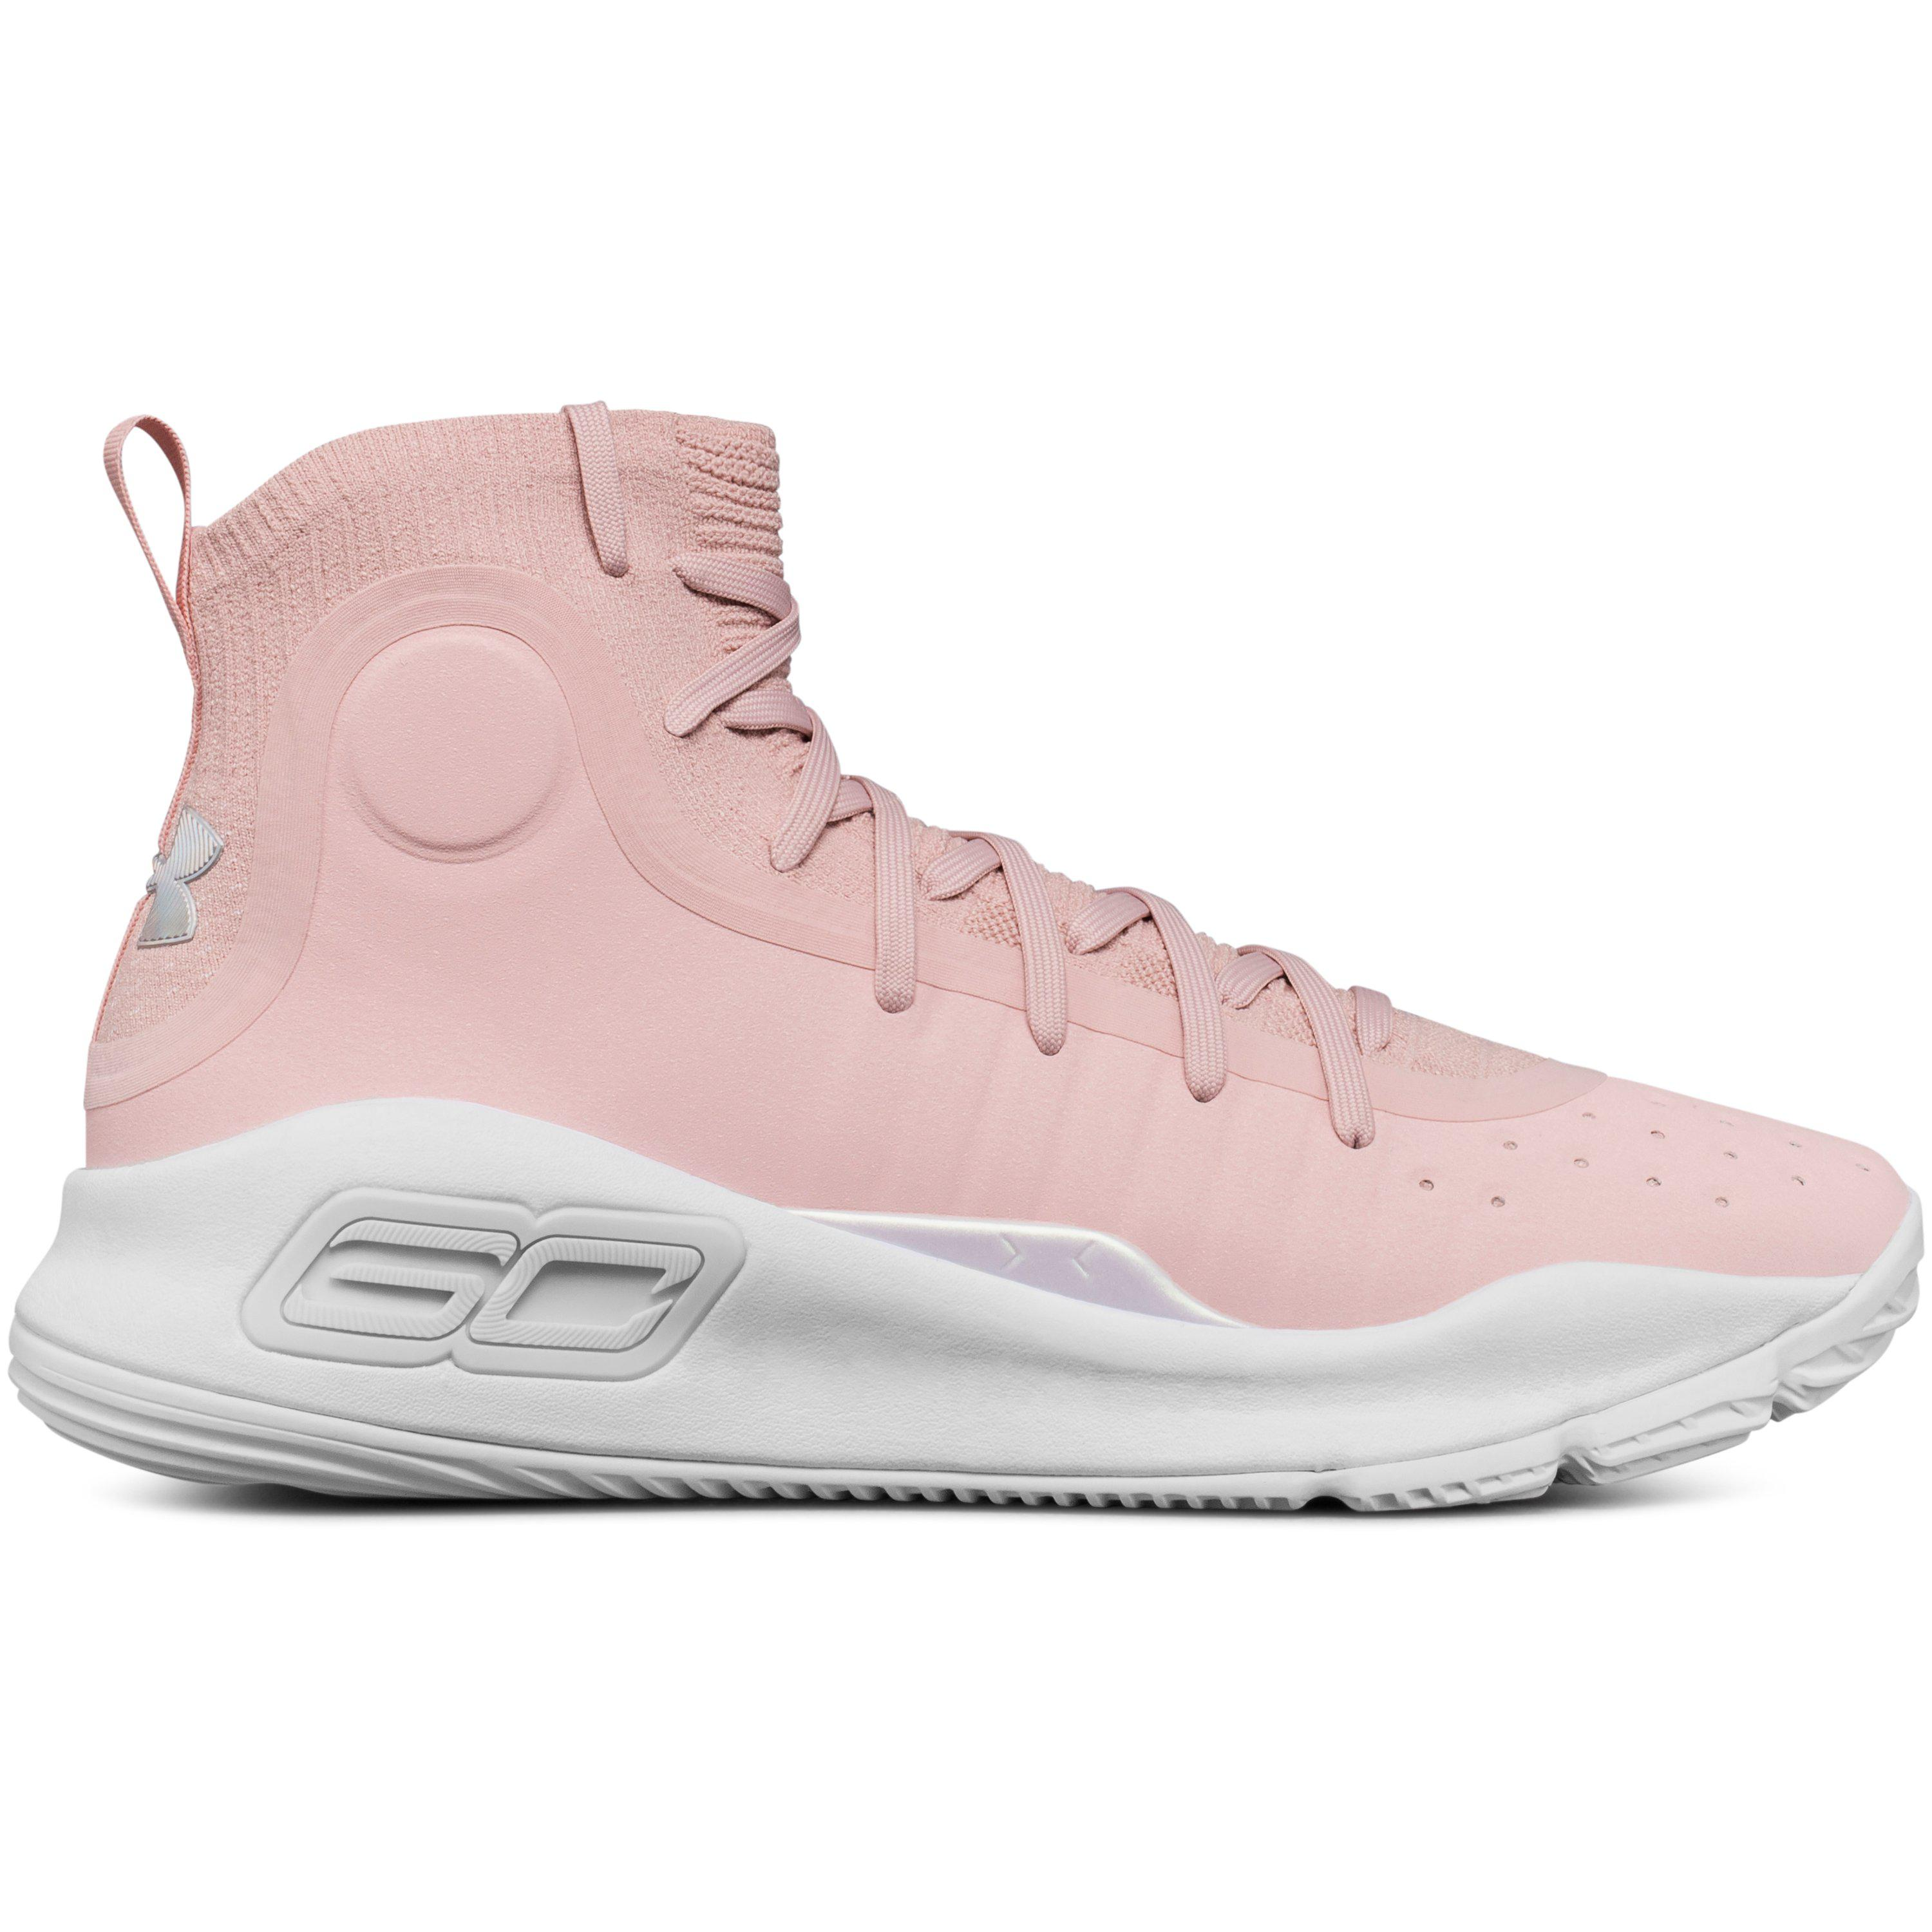 bf413c2512c Under Armour Men s Ua Curry 4 Basketball Shoes in Pink for Men - Lyst